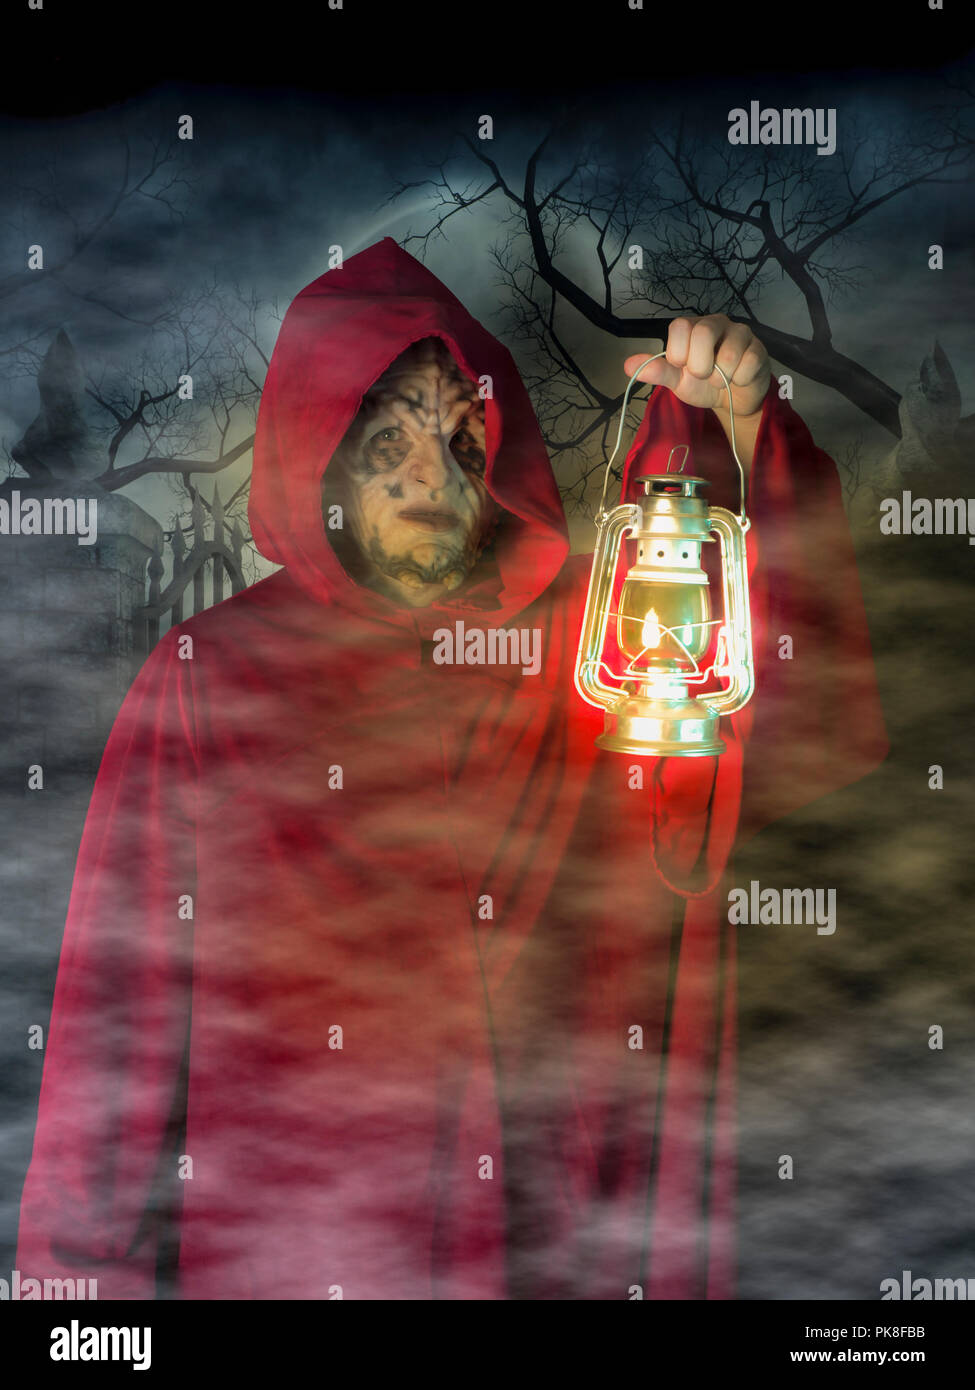 Mask Mens Adults Cult Leader Halloween Occult Fancy Dress Costume Robe